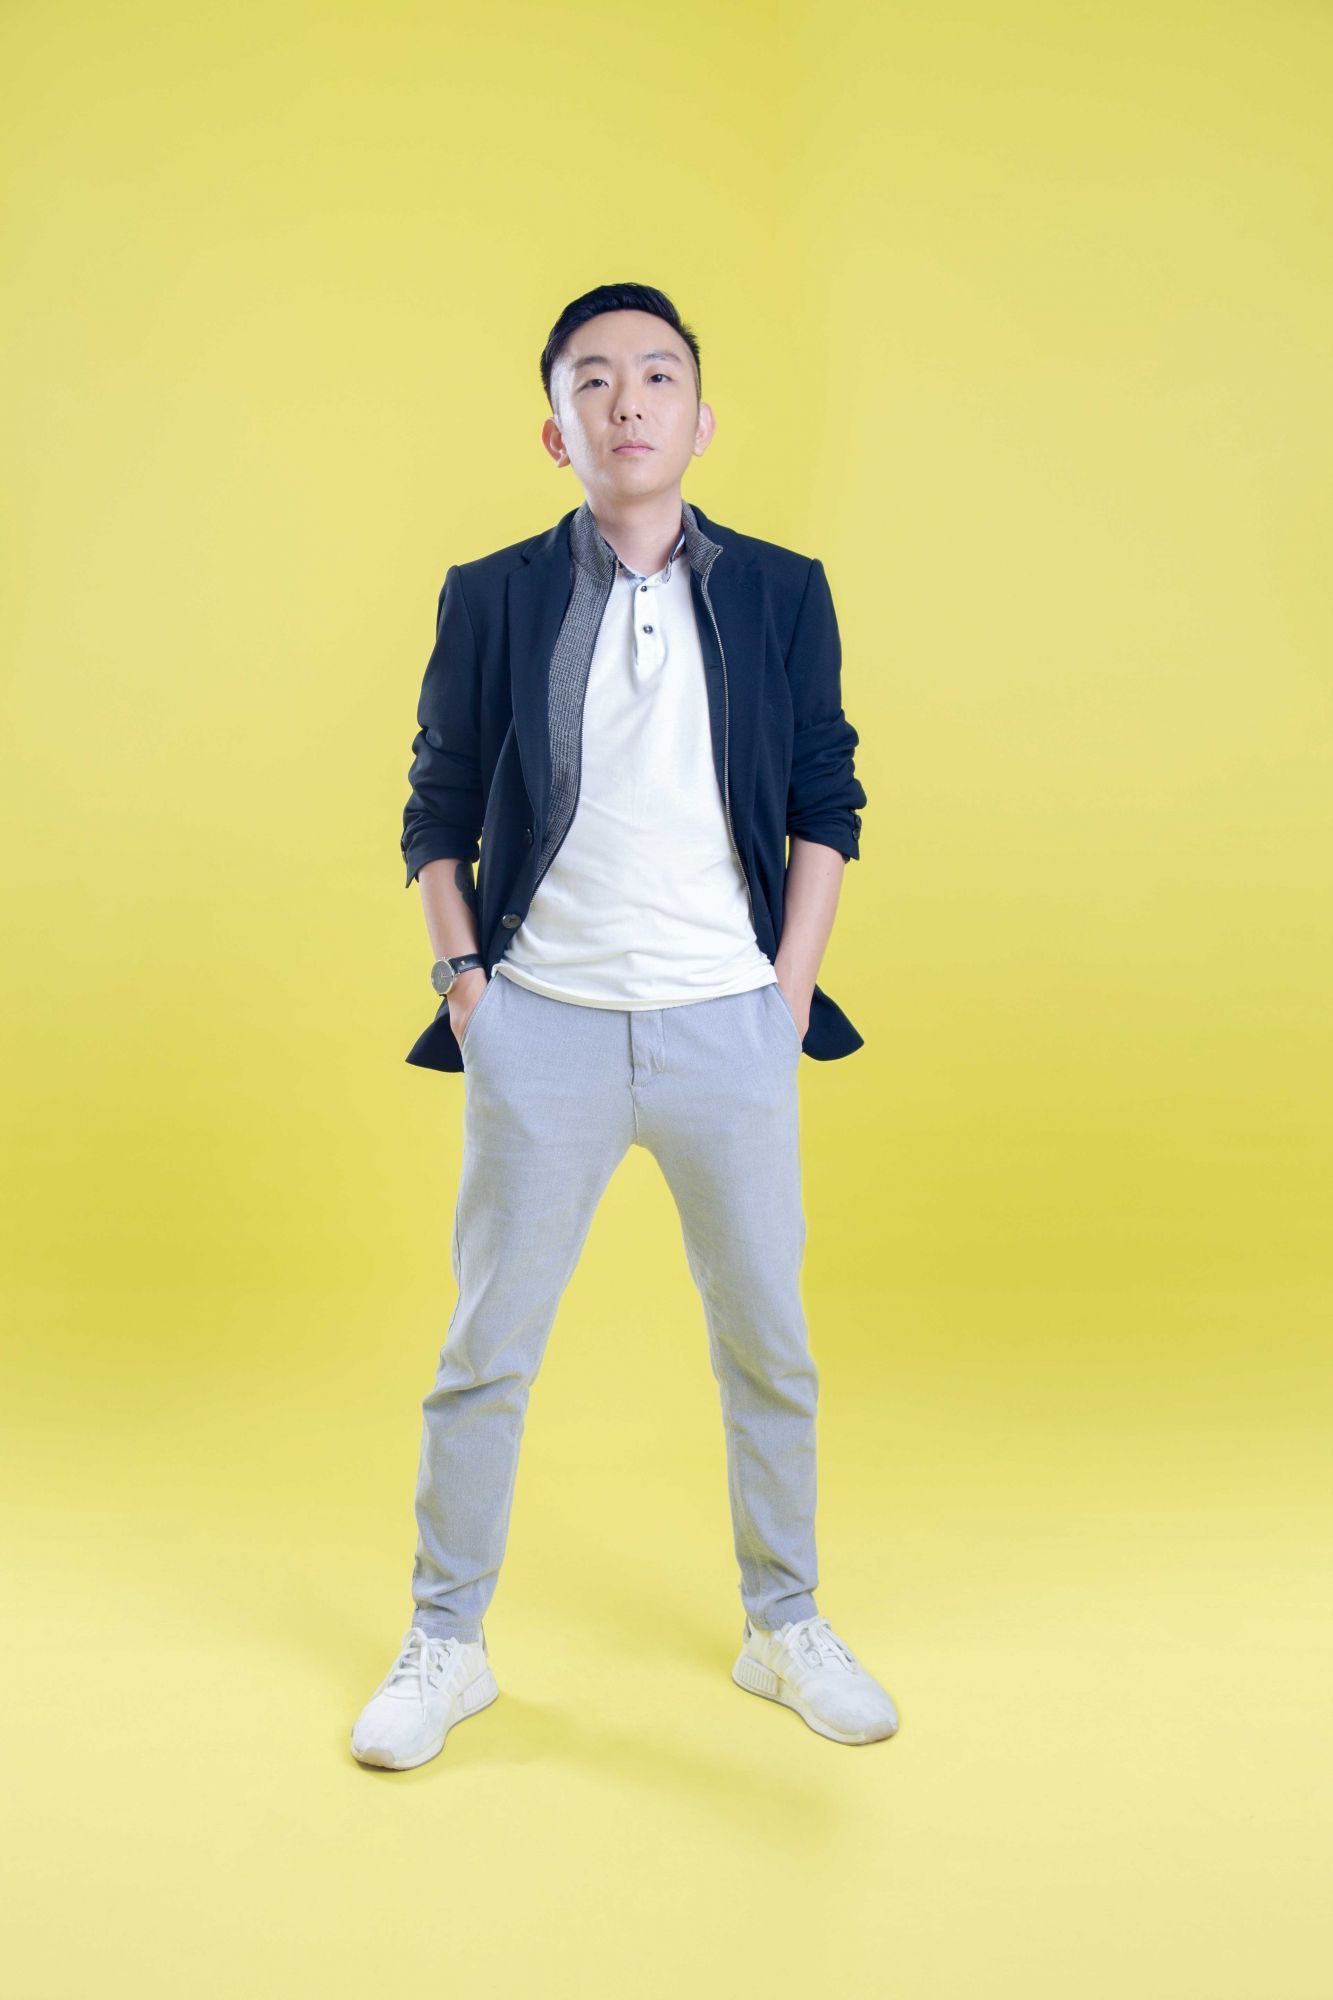 Eric Cheng, CEO of Carsome, On Disrupting The Used Car Sales Industry